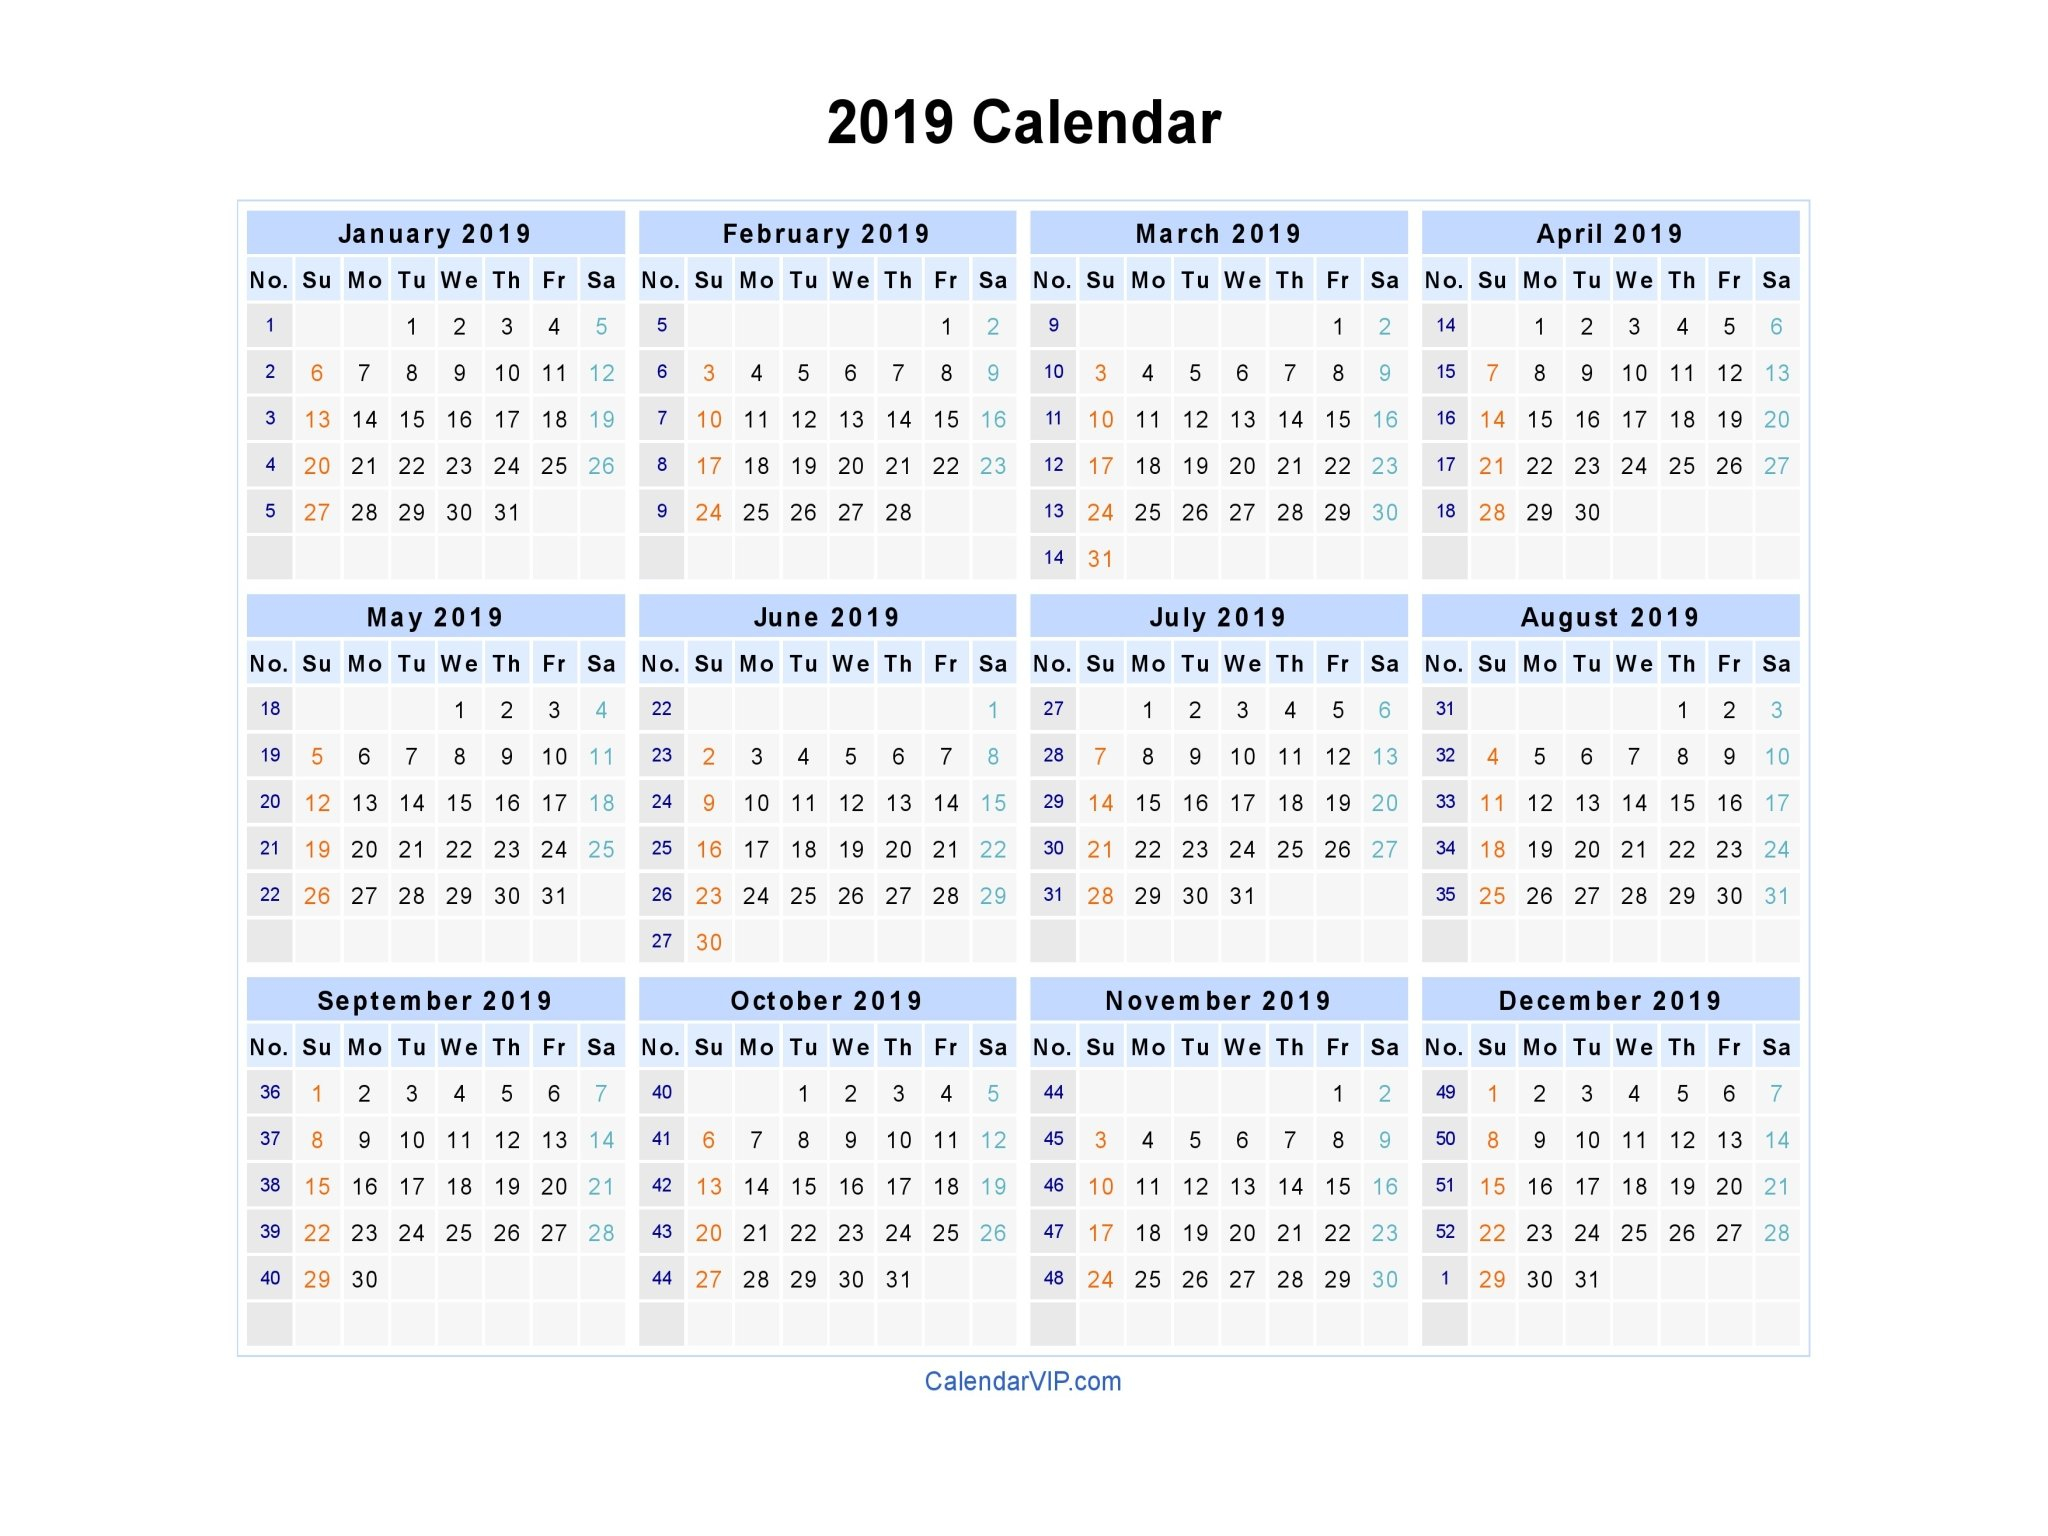 2019 Calendar - Blank Printable Calendar Template In Pdf Word Excel Calendar 2019 Excel With Week Numbers